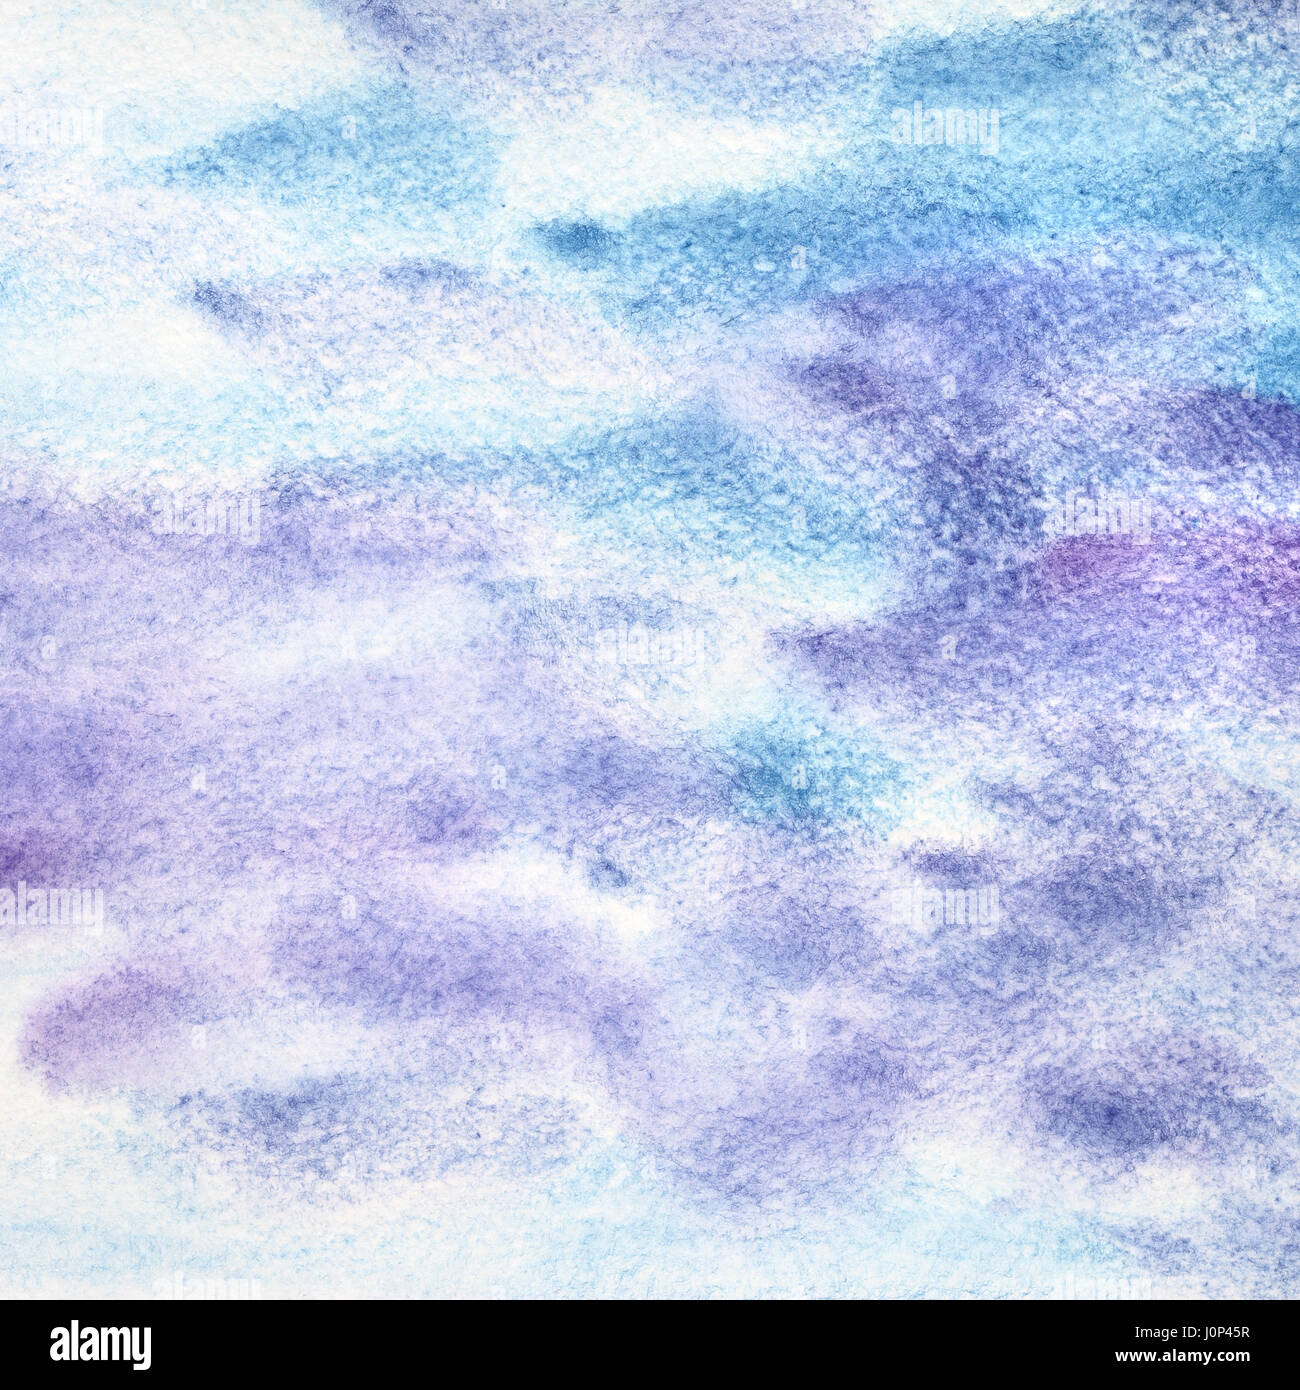 Blue violet watercolor abstract background with strokes Stock Photo